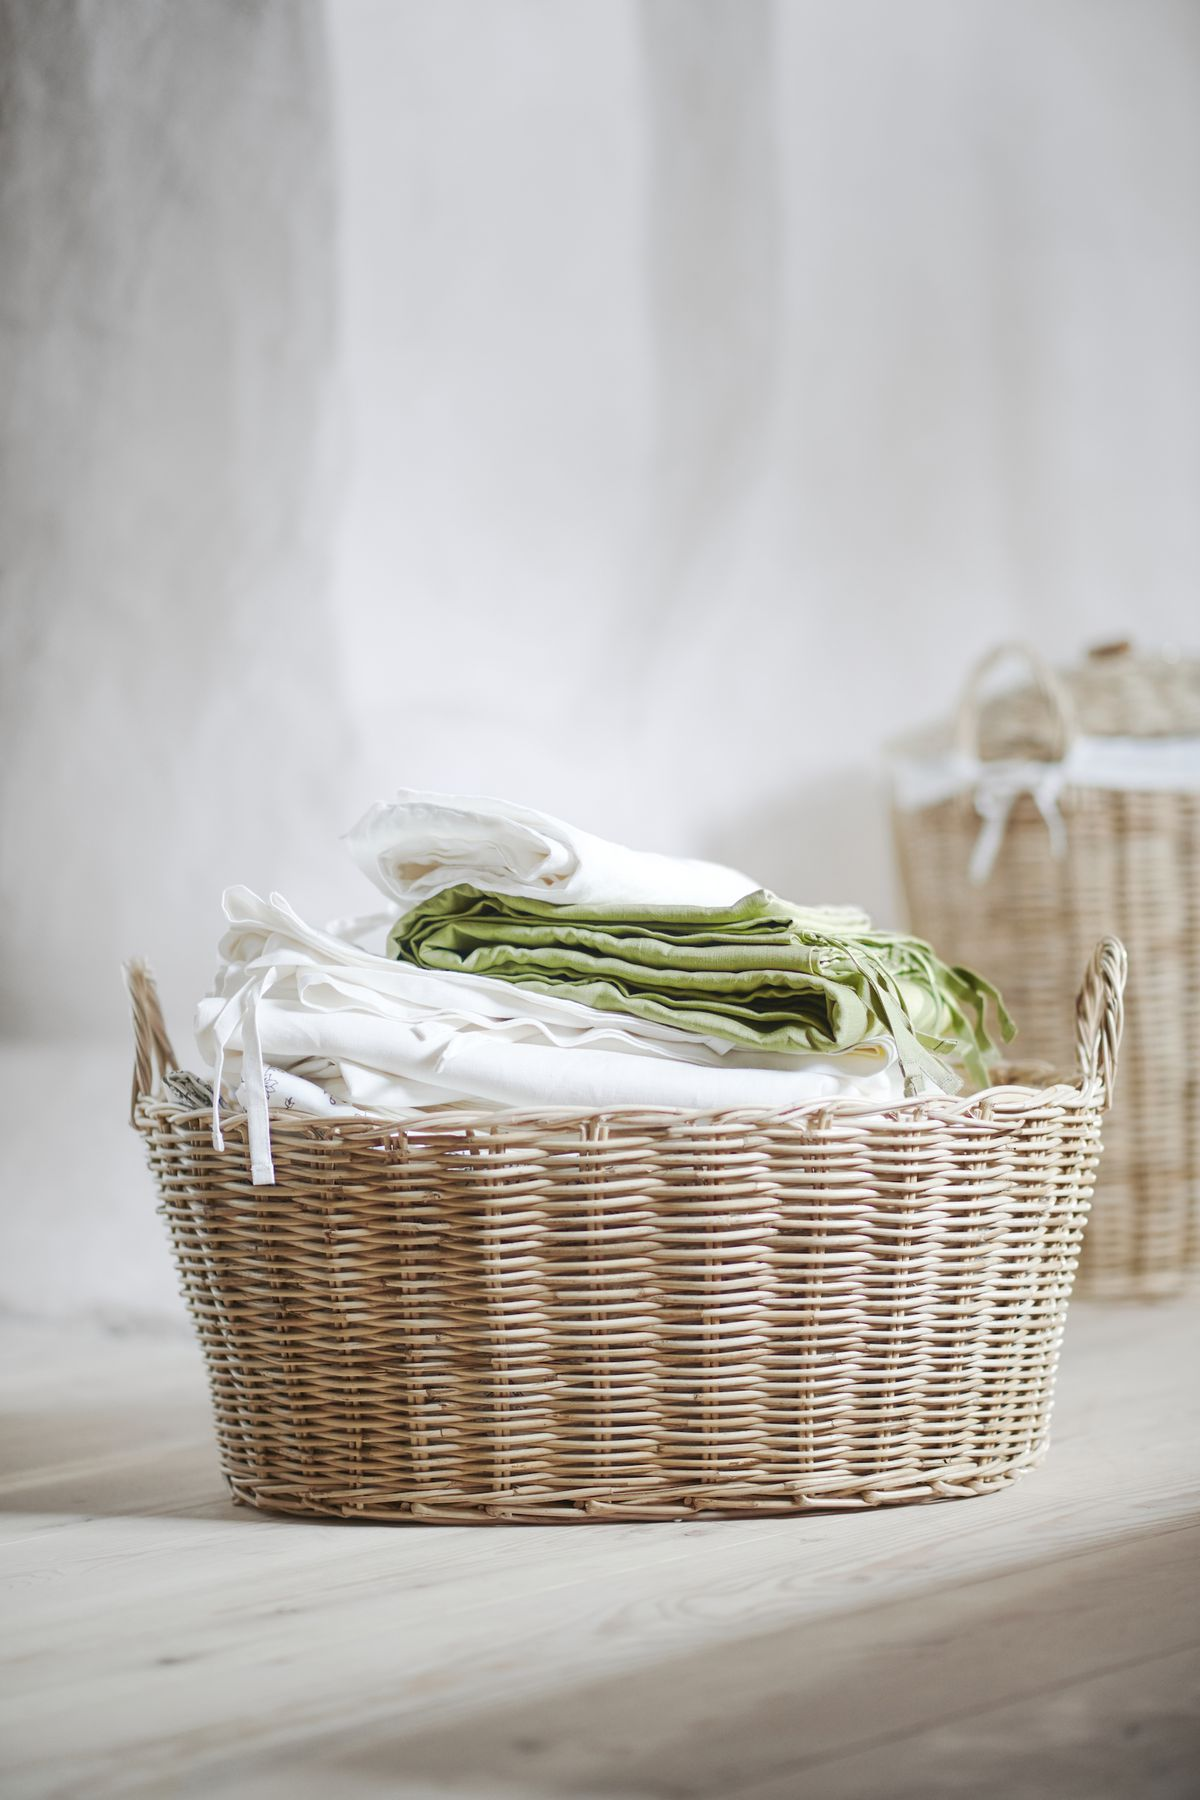 Rattan basket filled with textiles.